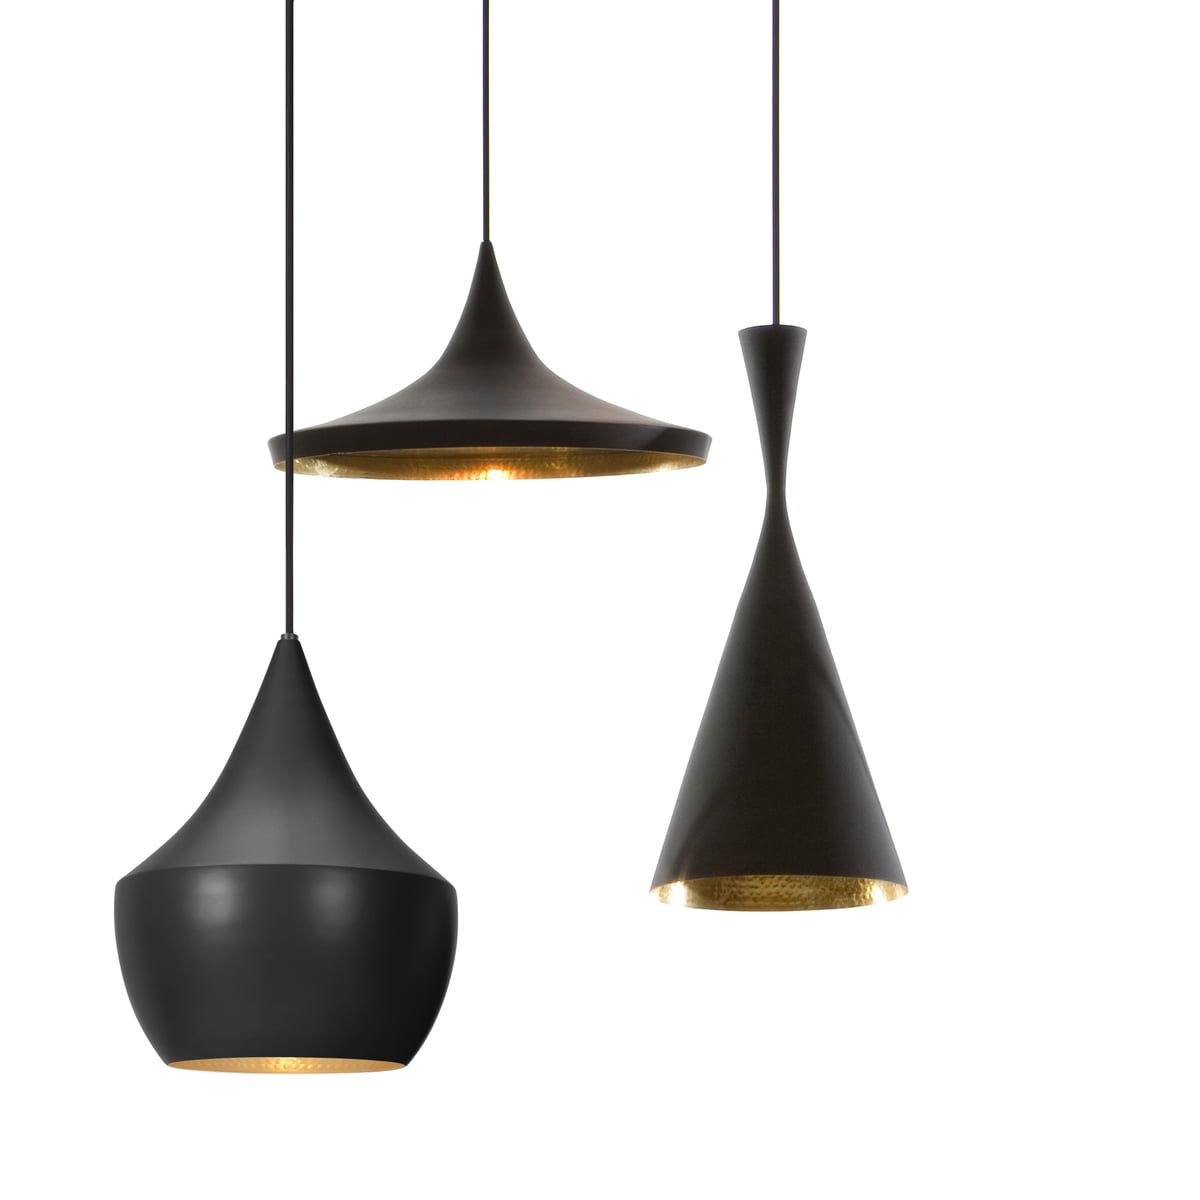 beat light pendant lamps tom dixon shop. Black Bedroom Furniture Sets. Home Design Ideas